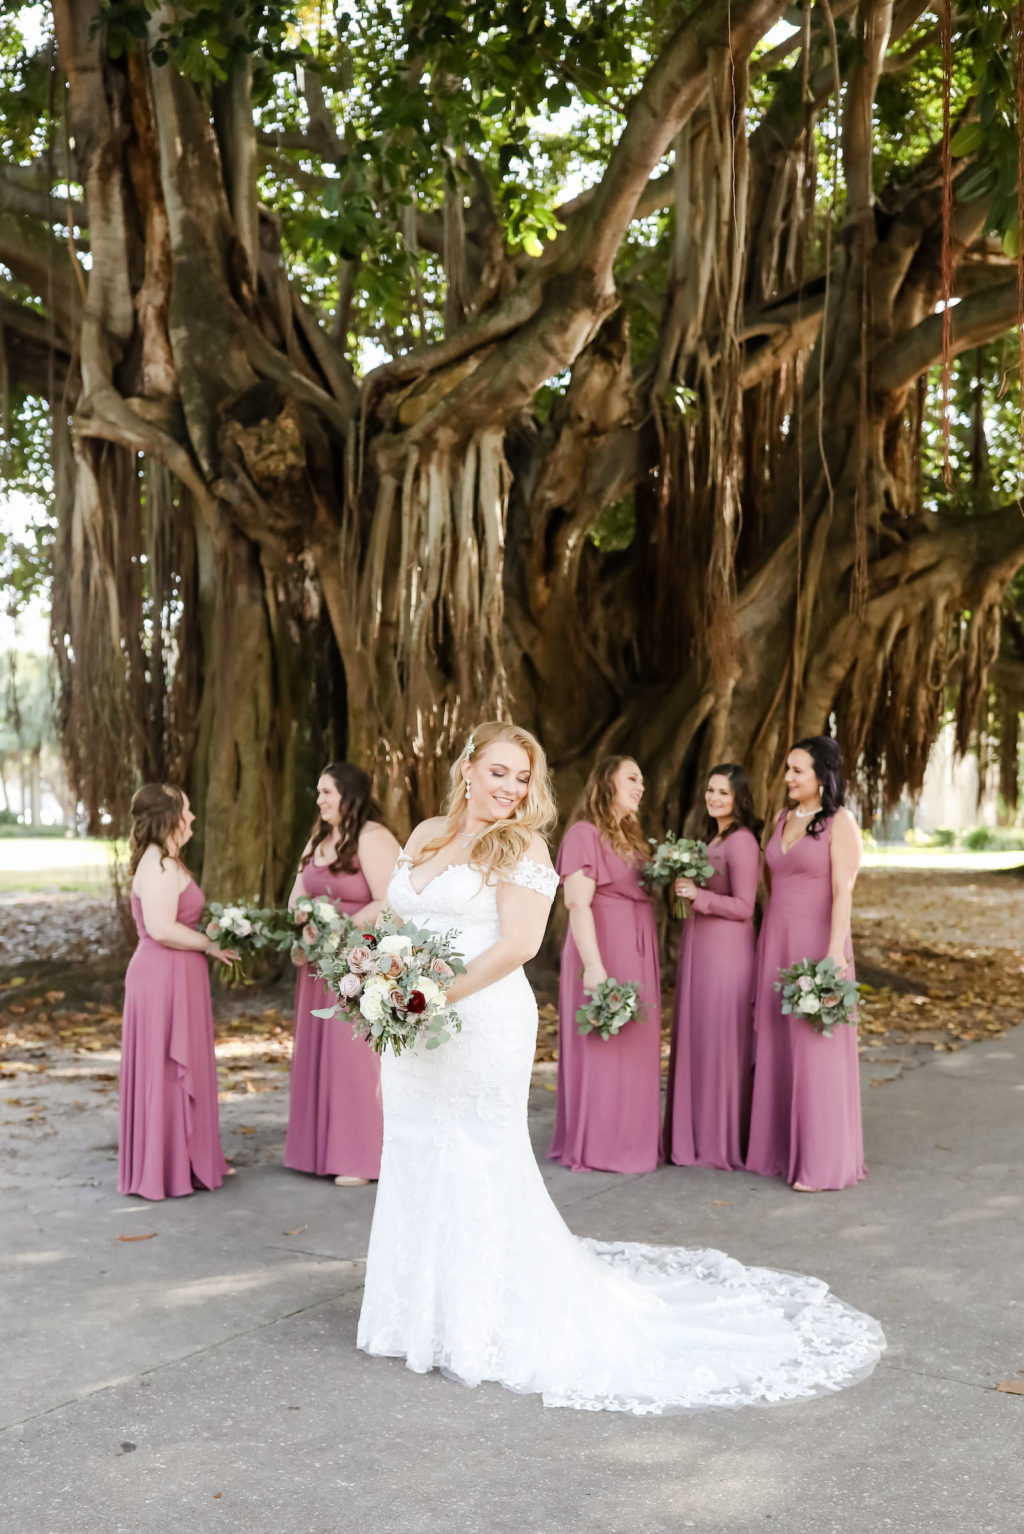 Classic Bride in Lace Off the Shoulder Wedding Dress, Bridesmaids in Dusty Rose Dresses | Tampa Bay Wedding Florist Monarch Events and Design | Wedding Photographer Lifelong Photography Studio